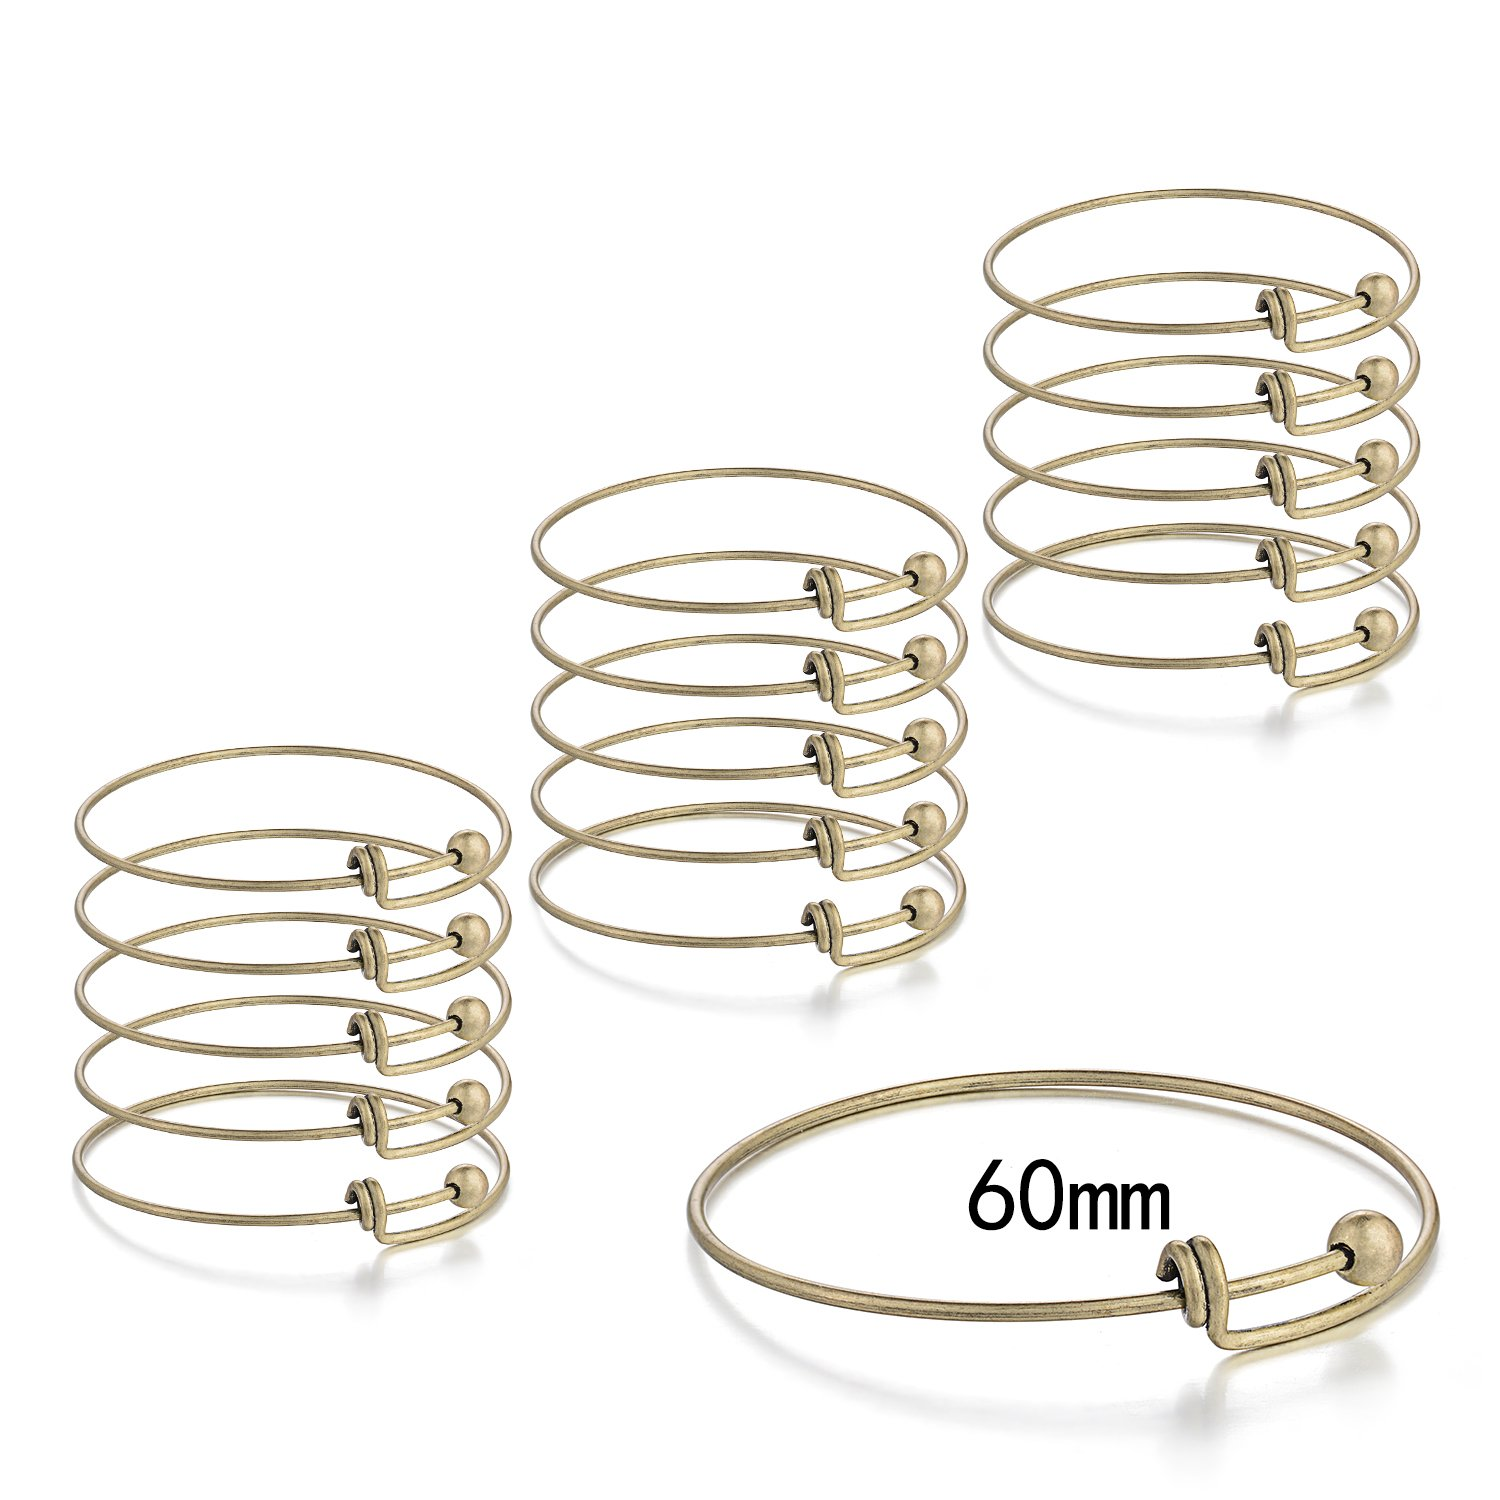 JEWMAY Adjustable Wire Blank Bangle Bracelet for Womens DIY Jewelry Making,2.4 Inch,Antique Brass,15 pcs/pack